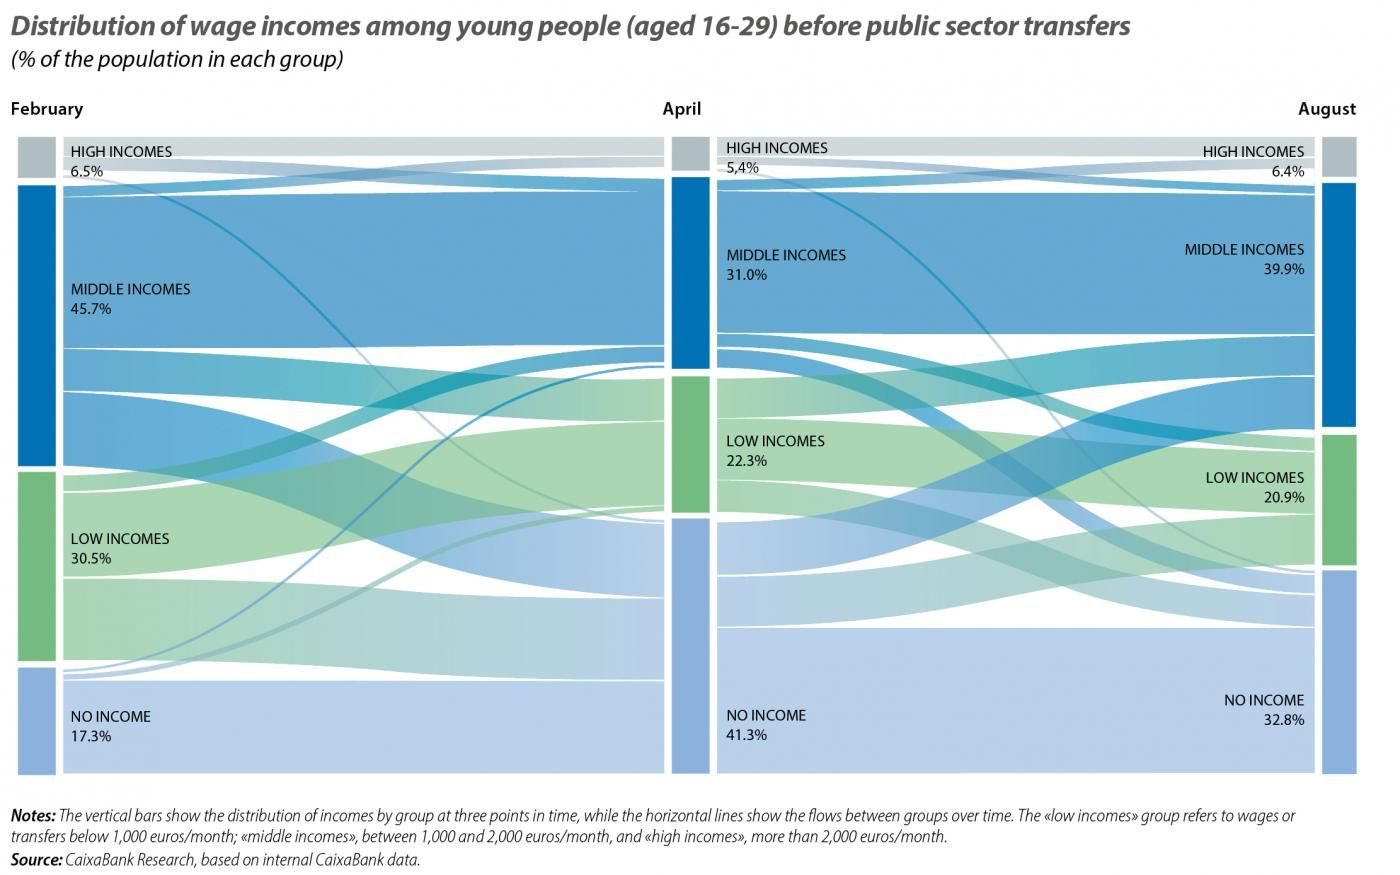 Distribution of wage incomes among young people (aged 16-29) before public sector transfers